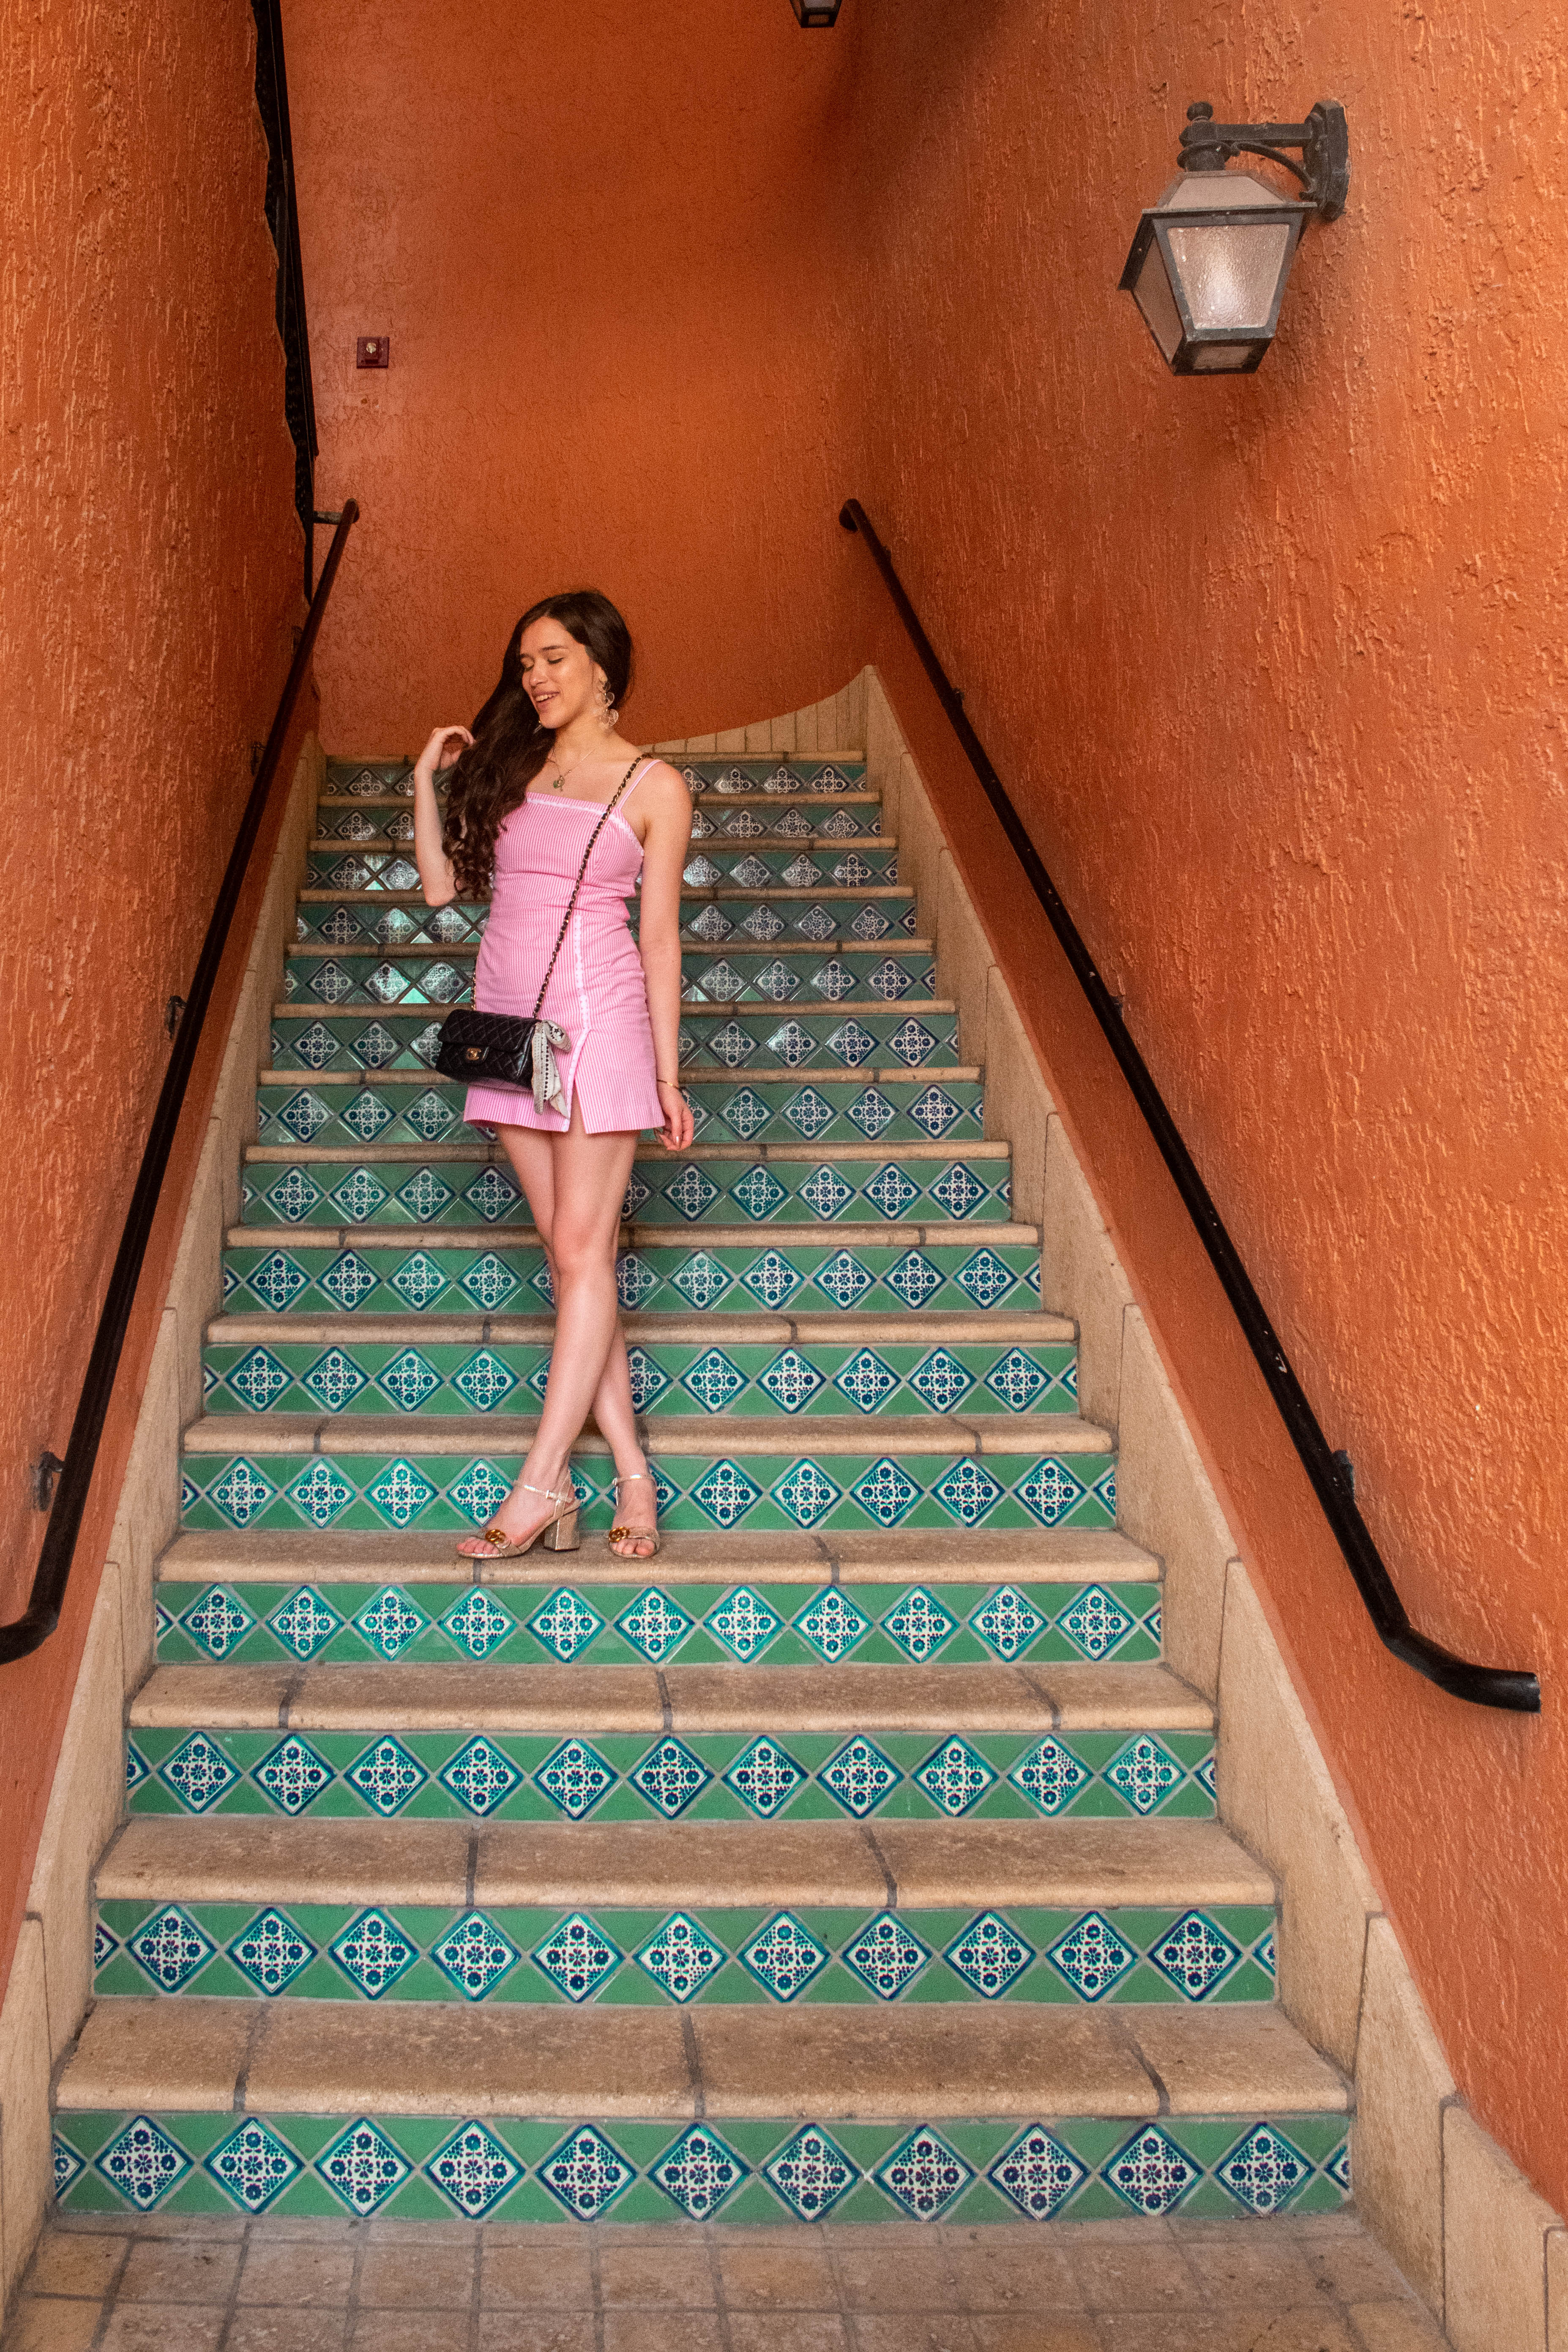 travel and preppy style blogger eva phan of eva darling at rosemary square west palm beach tiled staircase lilly pulitzer jesse romper pink yarn dyed stripe seersucker southern style summer outfit inspiration cityplace